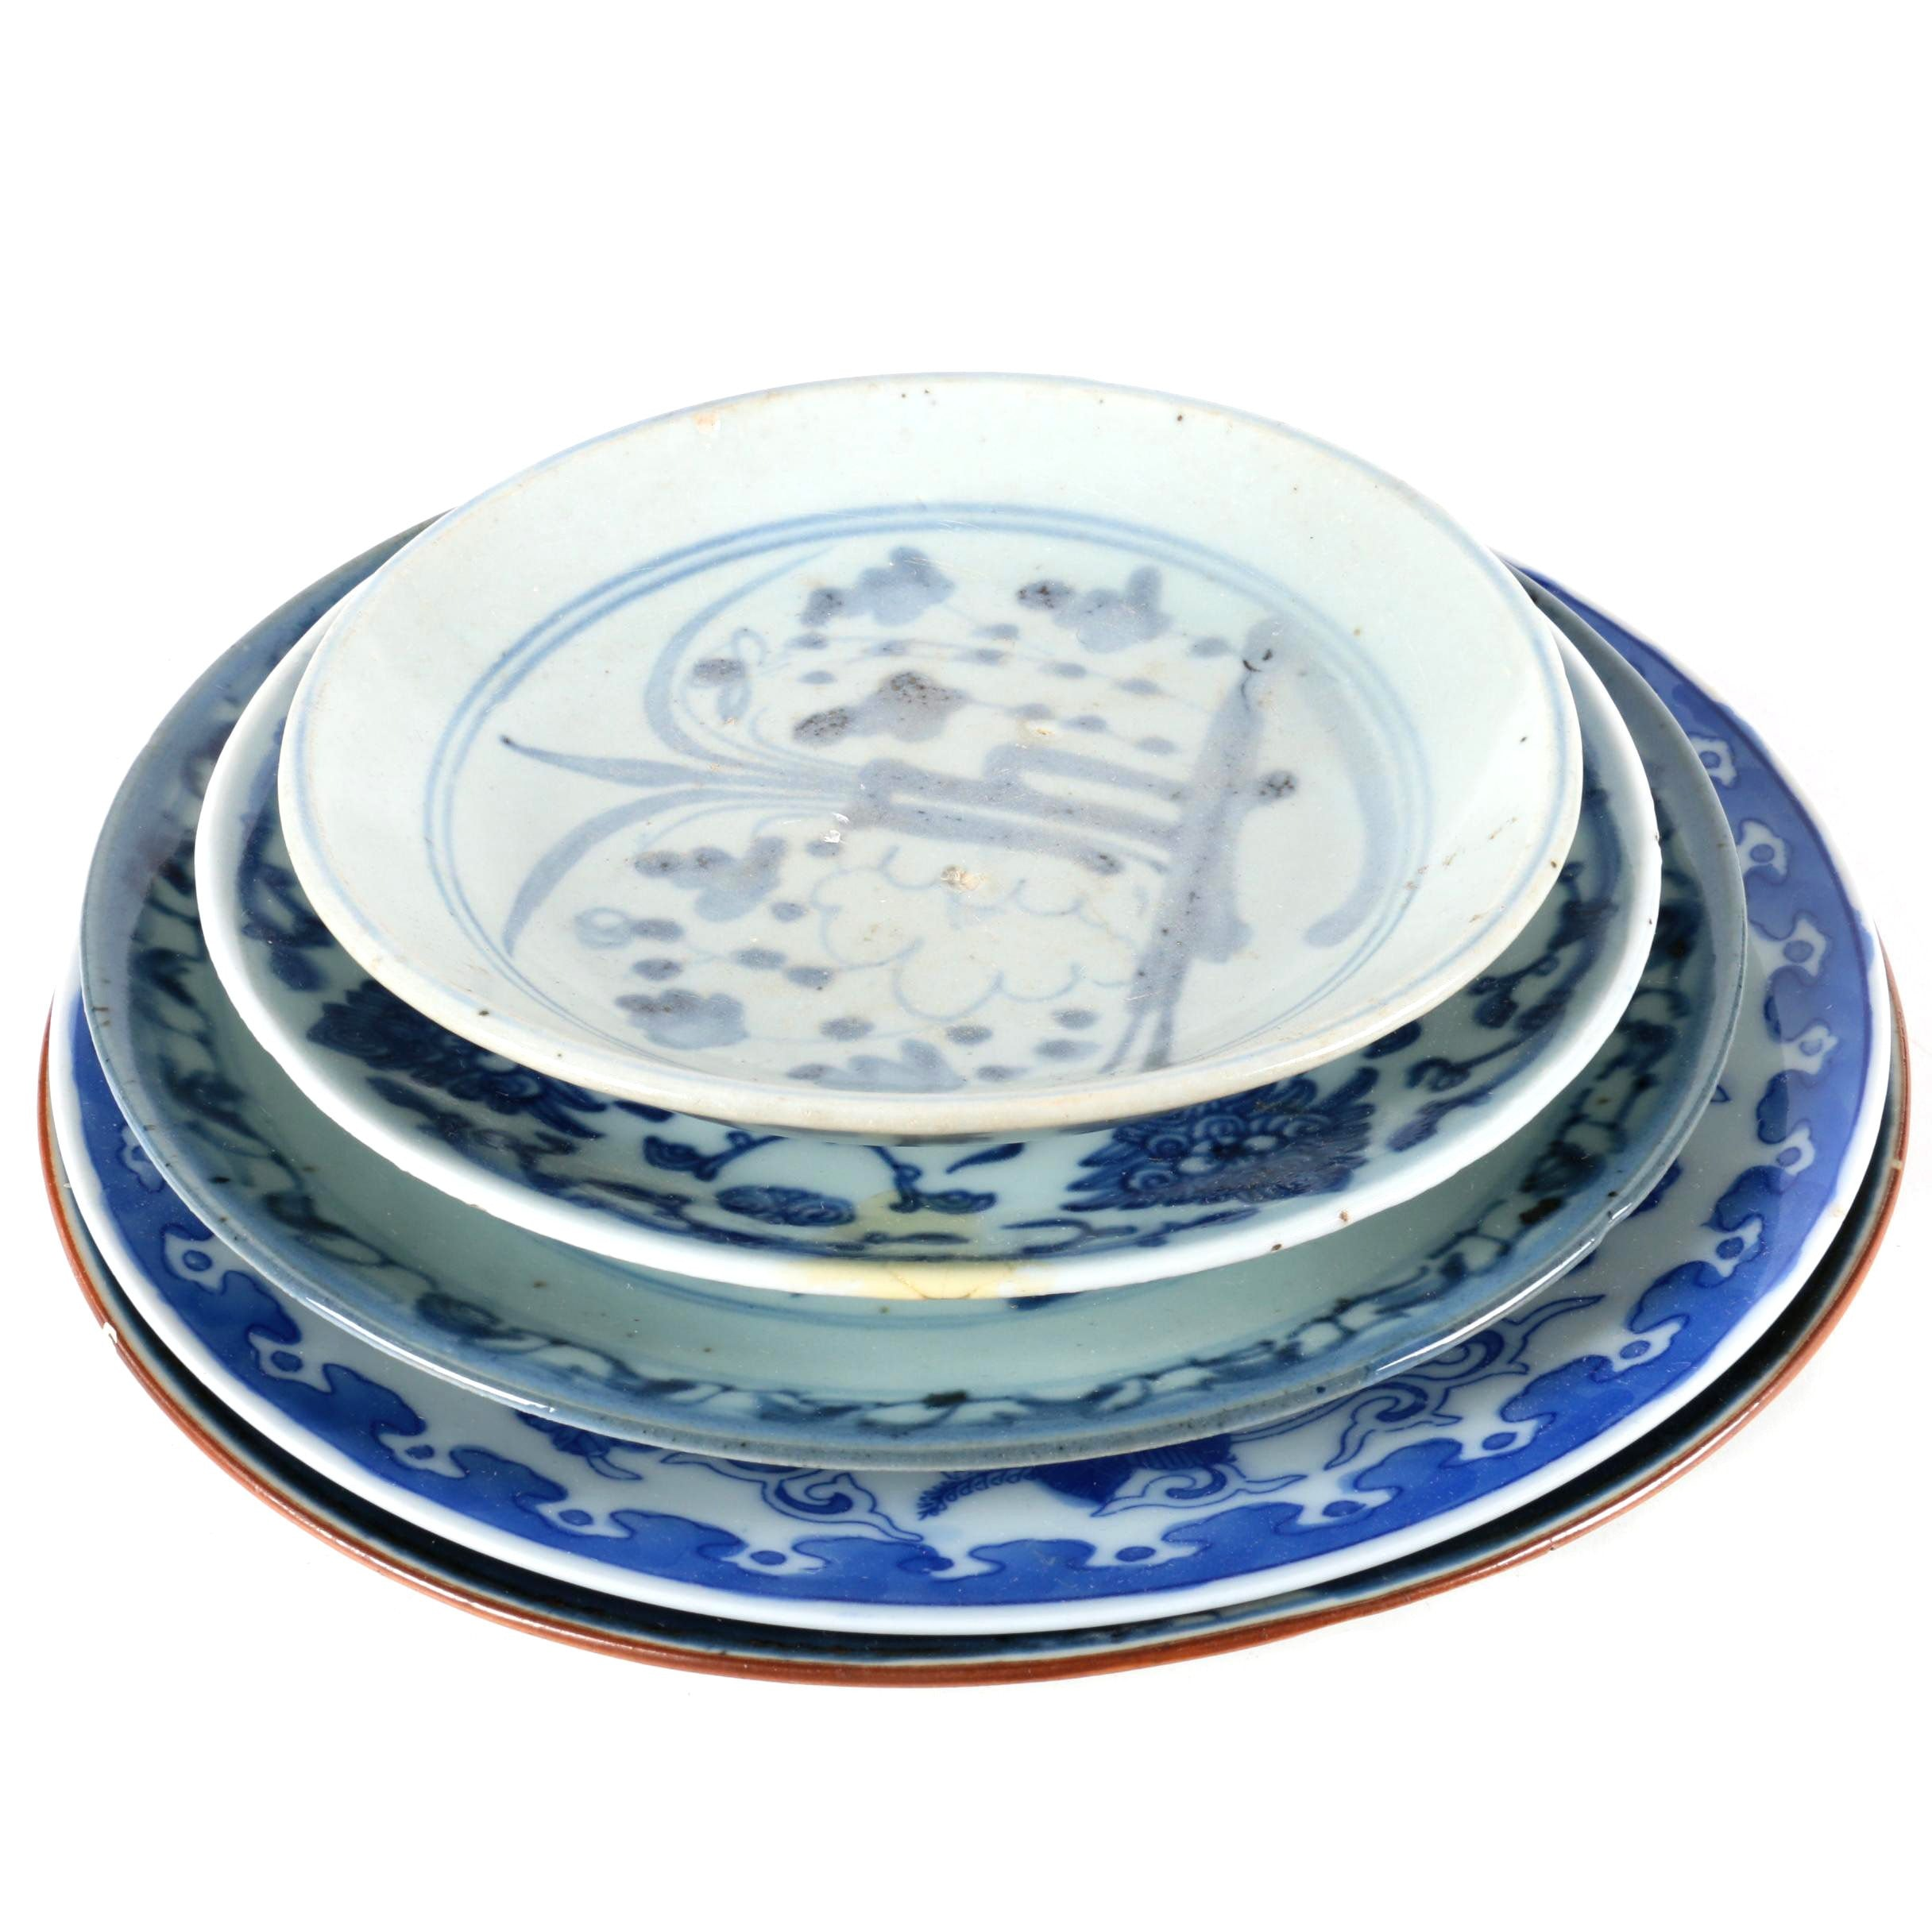 Blue and White Ceramic Plates